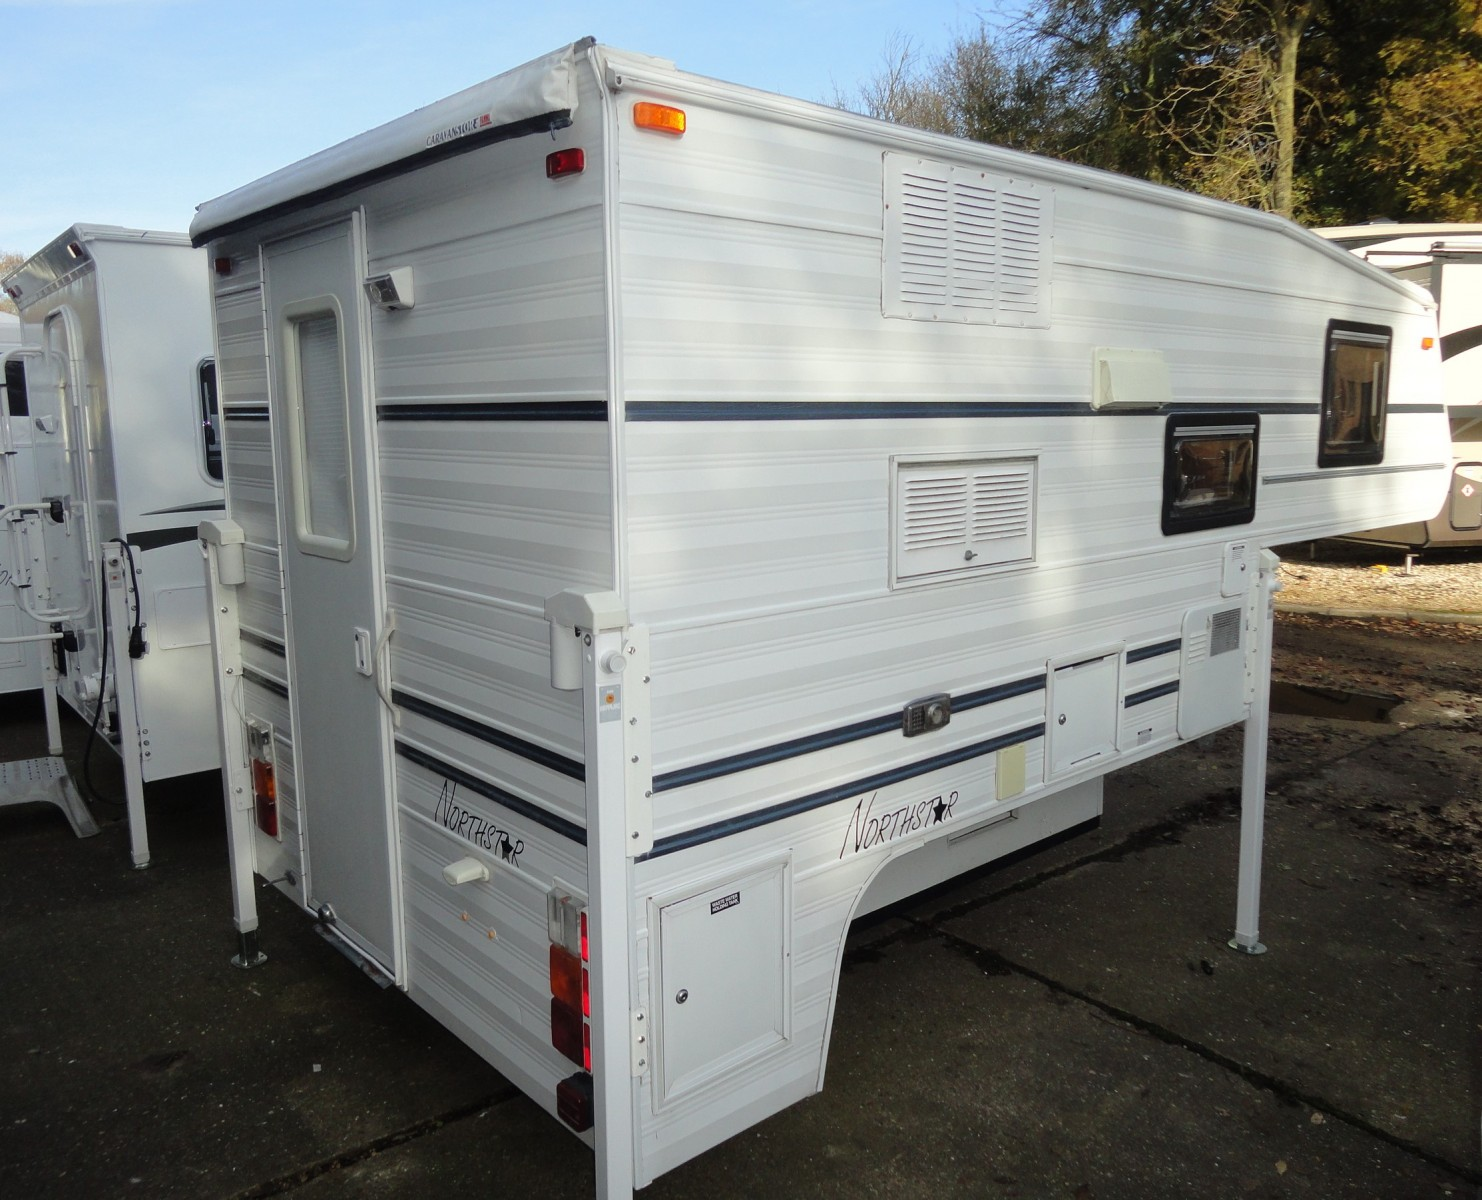 Northstar Demountable Camper 750SC***SOLD***